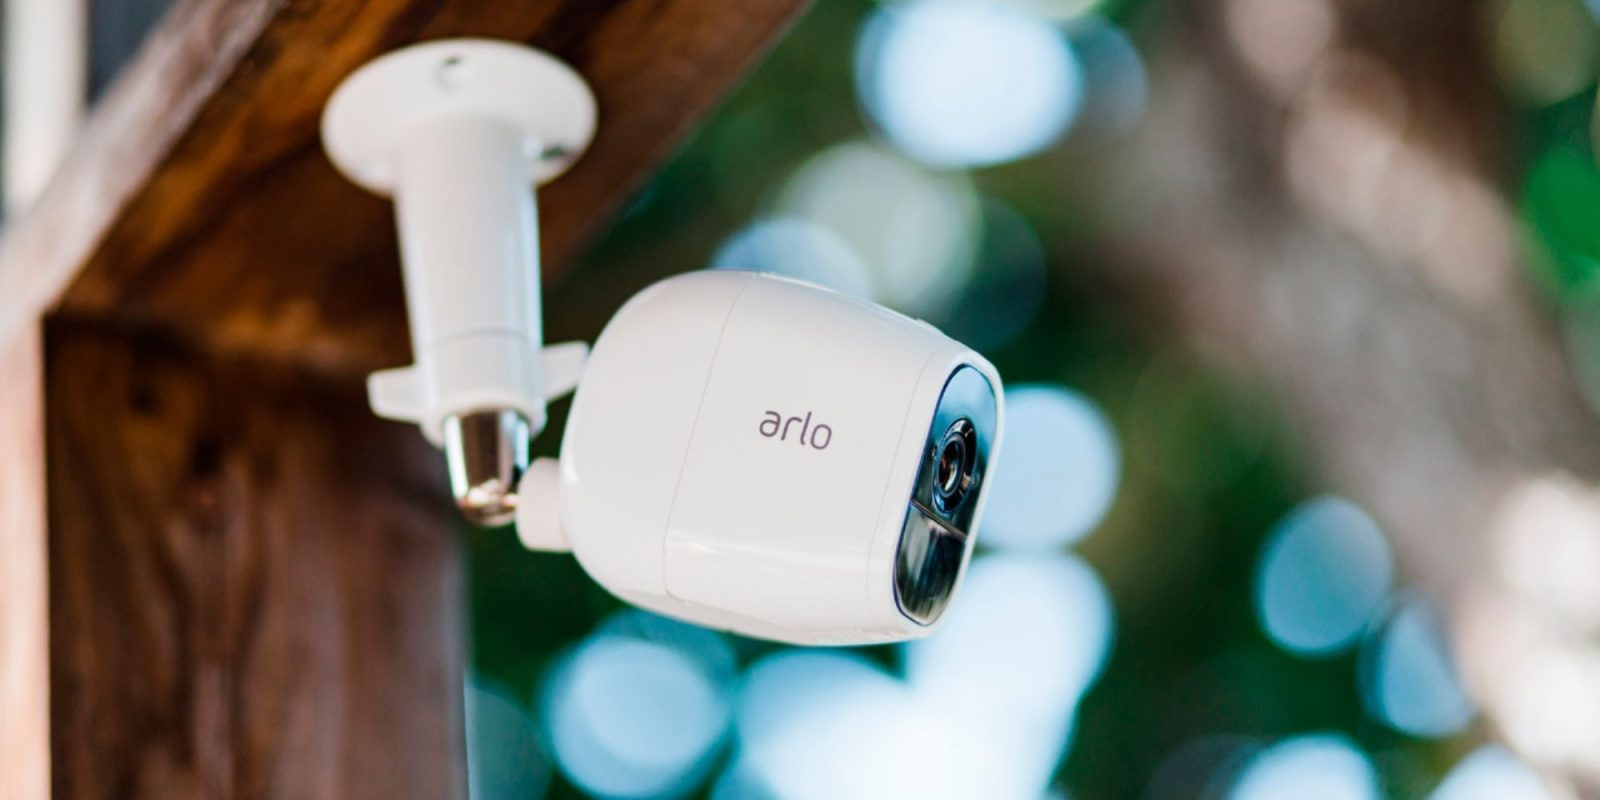 Arlo HomeKit camera starter kit drops to its best price in months